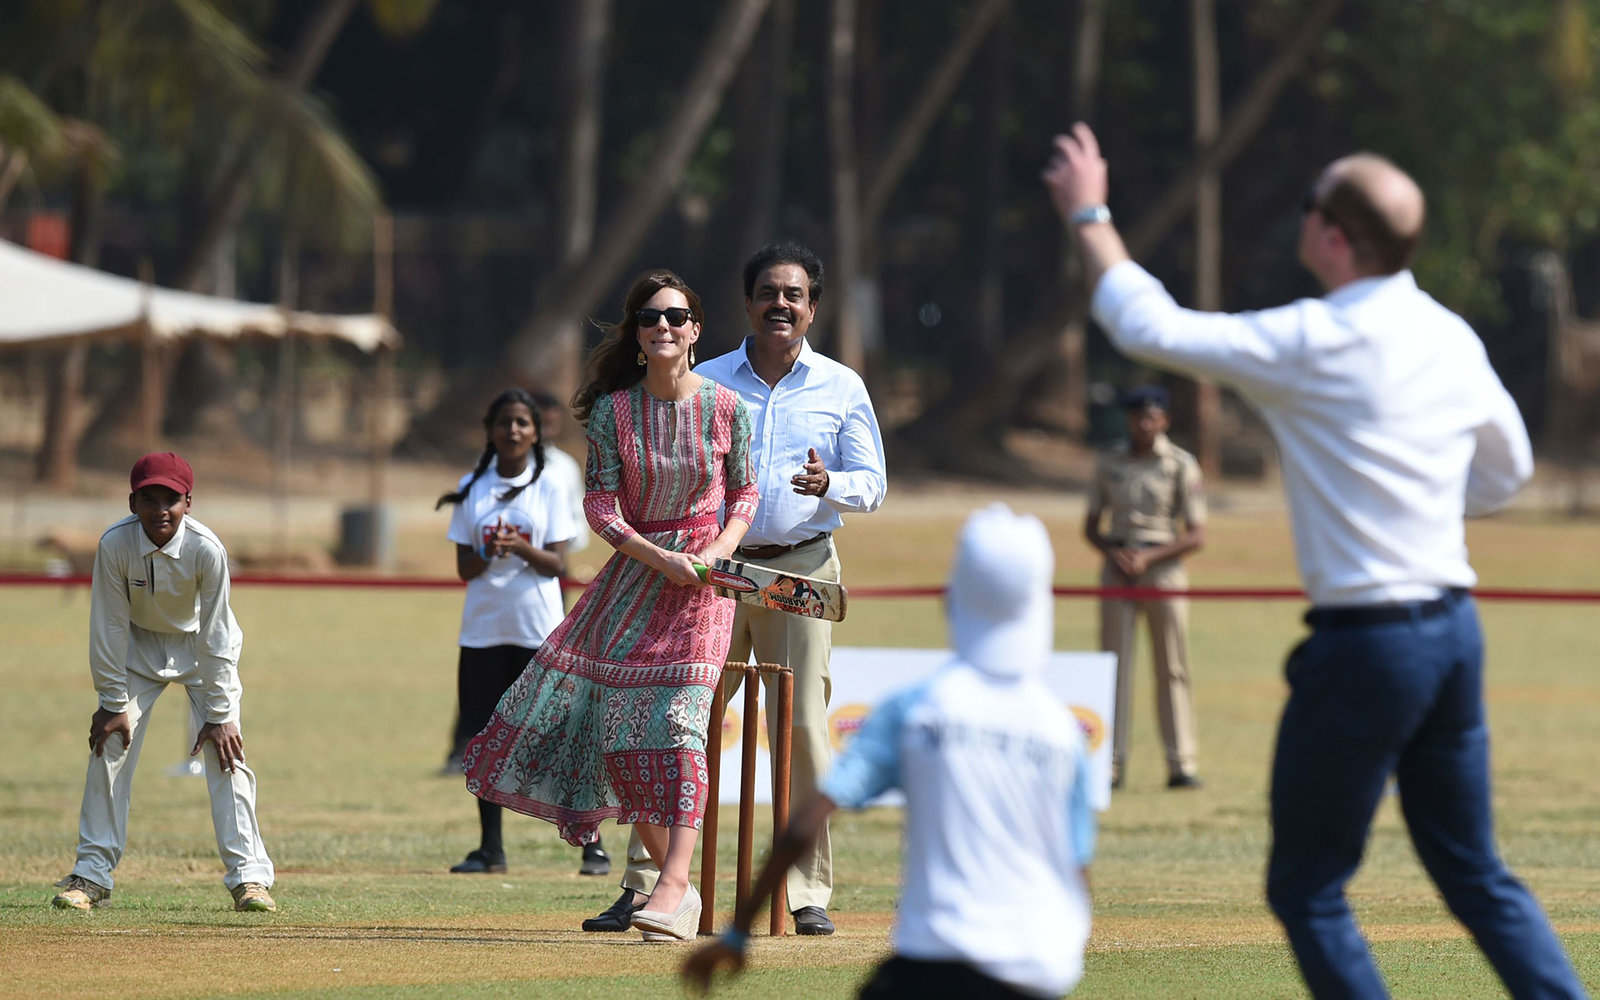 Catherine, Duchess of Cambridge(C) looks on as she and Prince William, Duke of Cambridge(R) play a game of cricket with Indian children who are beneficiaries of NGO's at The Oval Maidan in Mumbai on April 10, 2016. / AFP / INDRANIL MUKHERJEE        (Photo